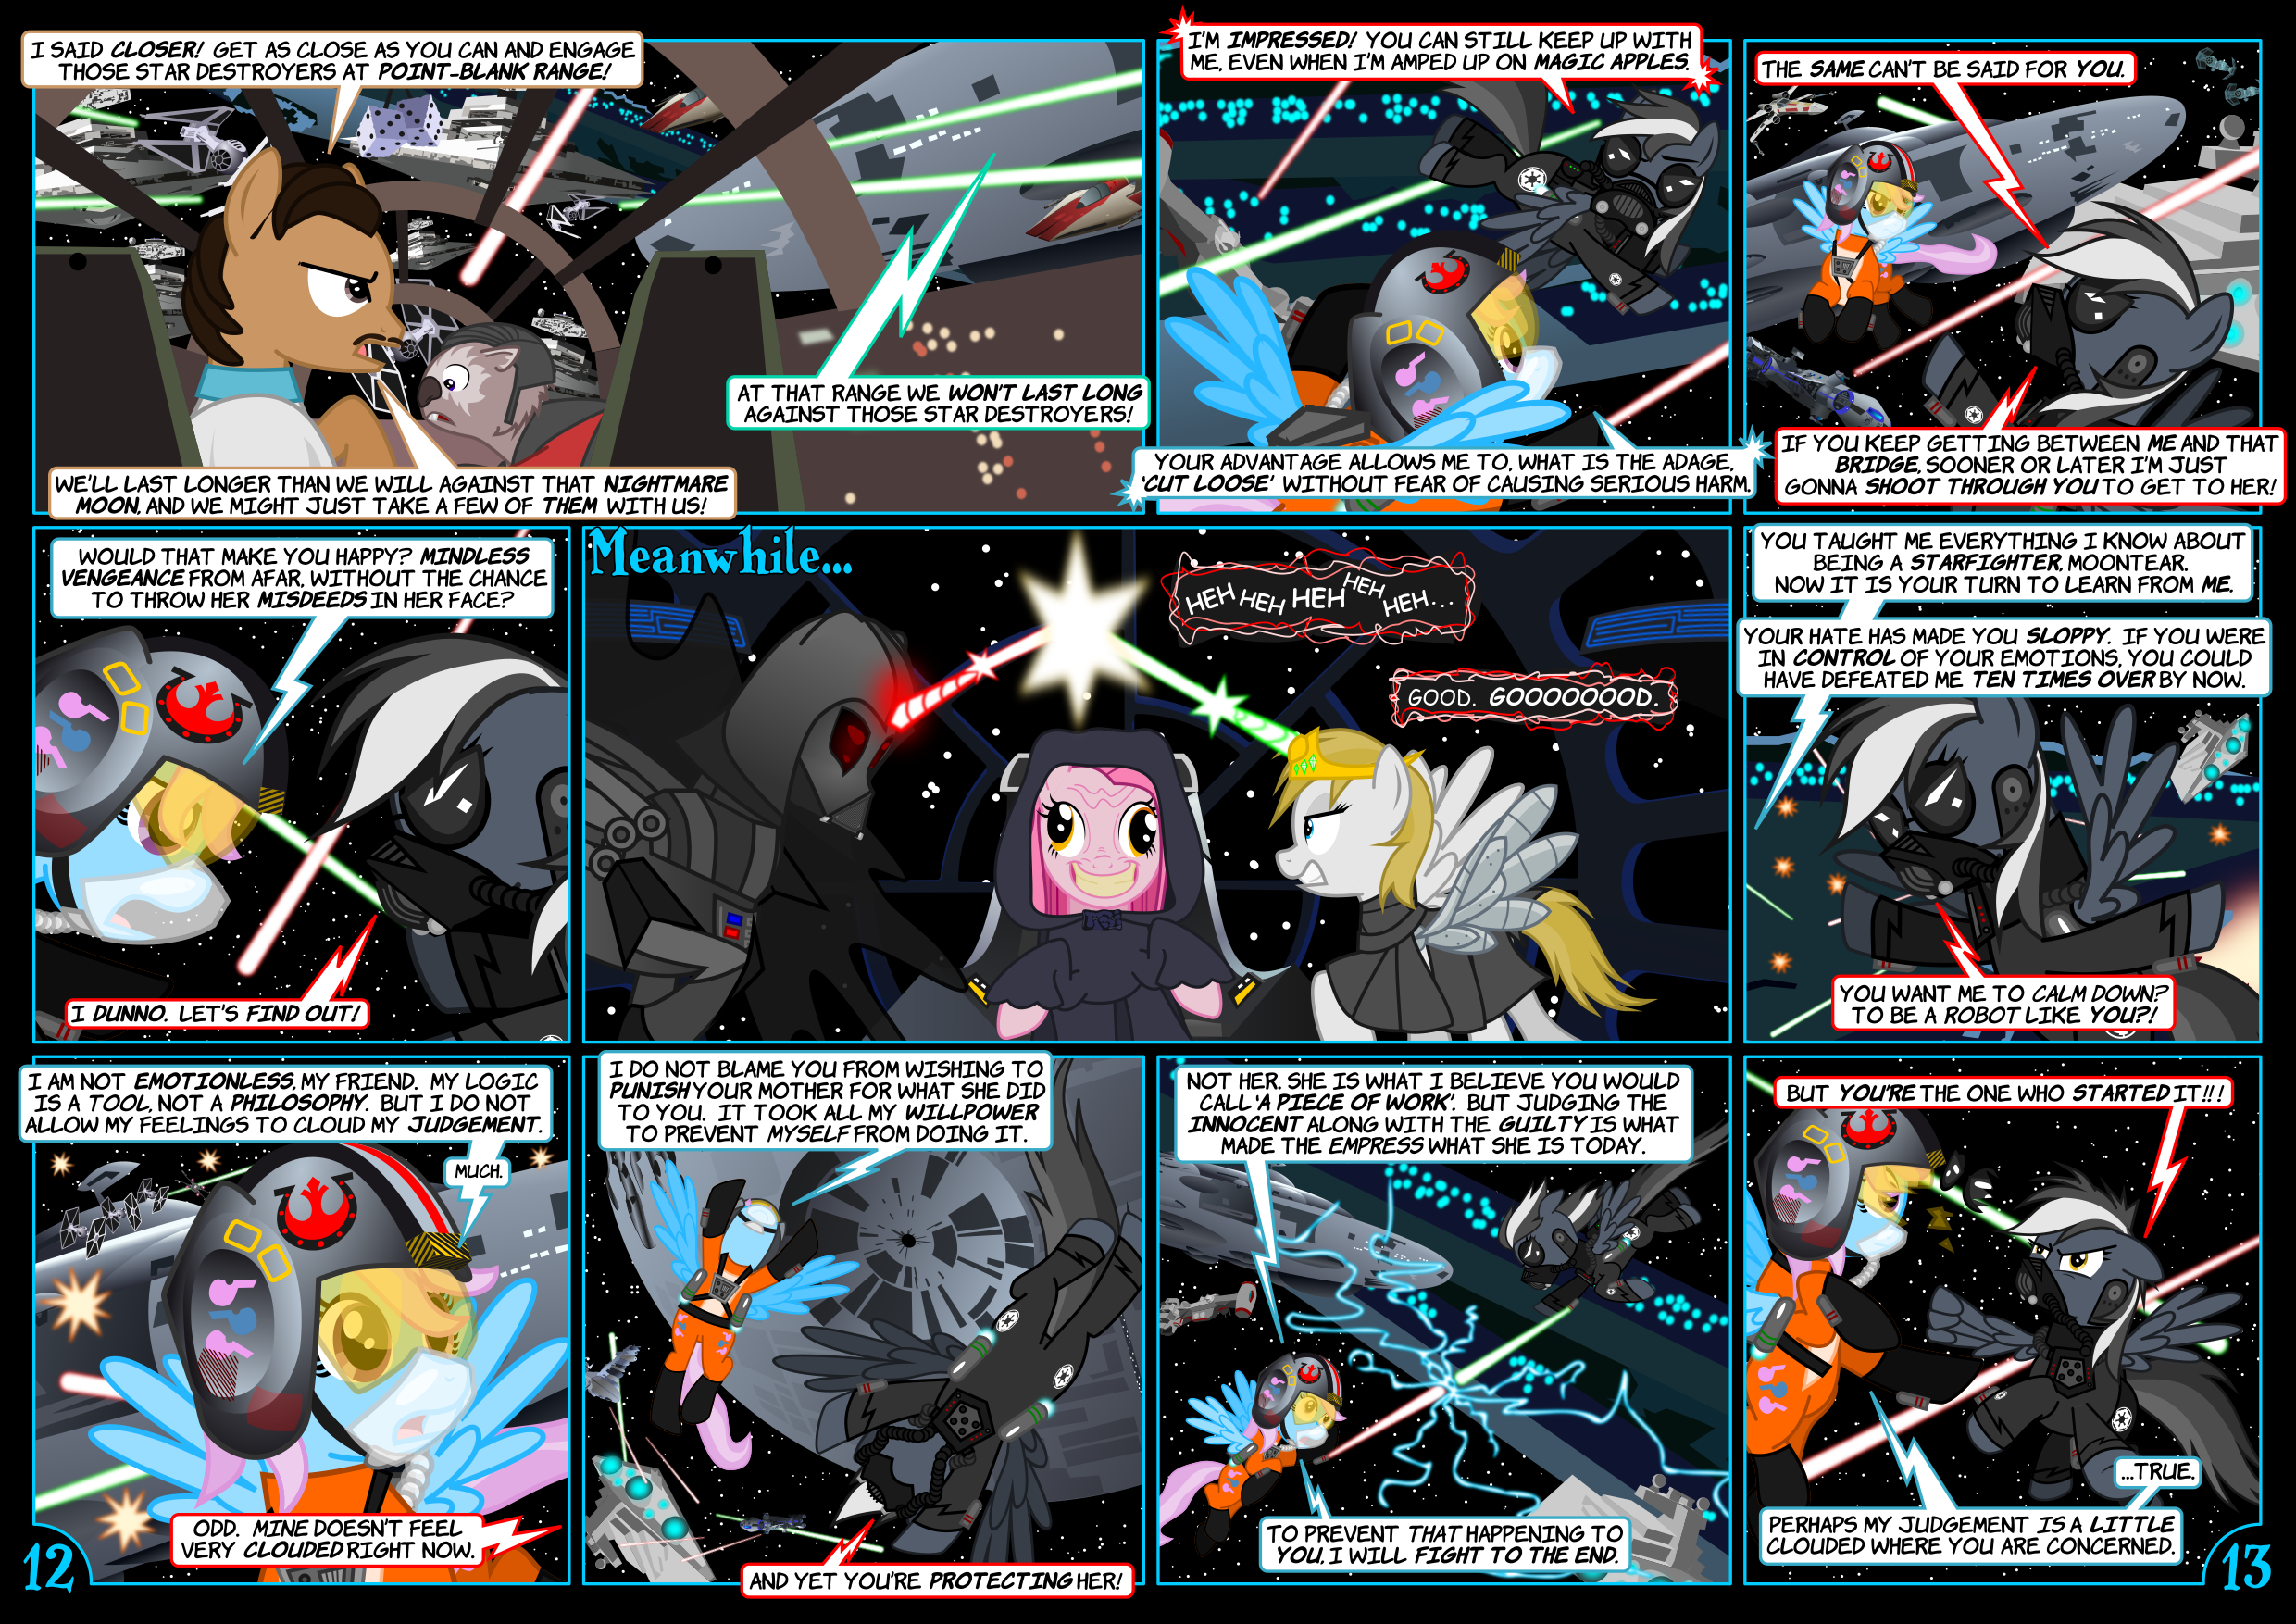 Star Mares 3.4.12-13: Really Most Illogical